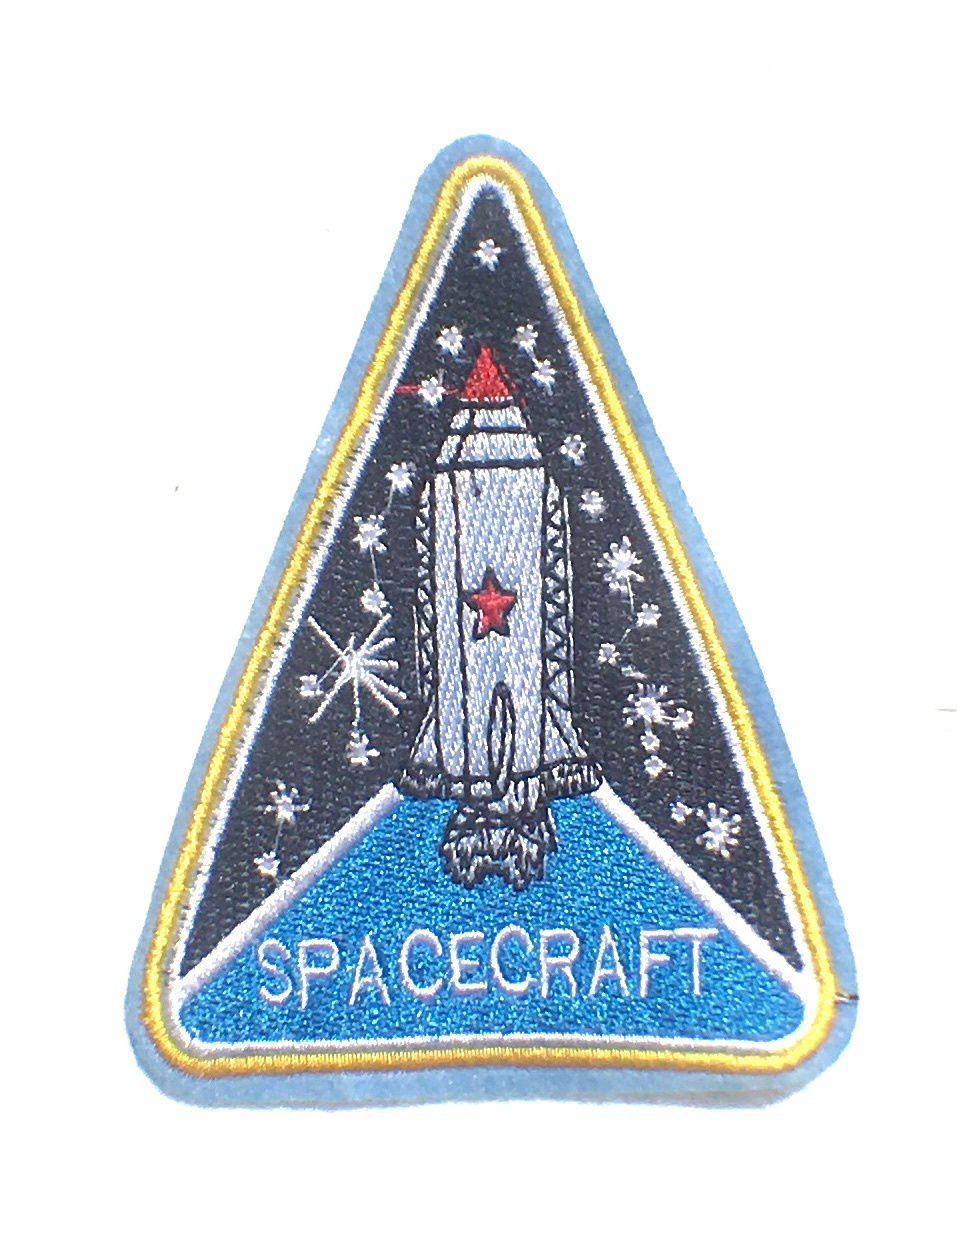 CooL Space Craft Spaceship spacecraft style sew on patch 4.5x3.5 space travel sew on patches